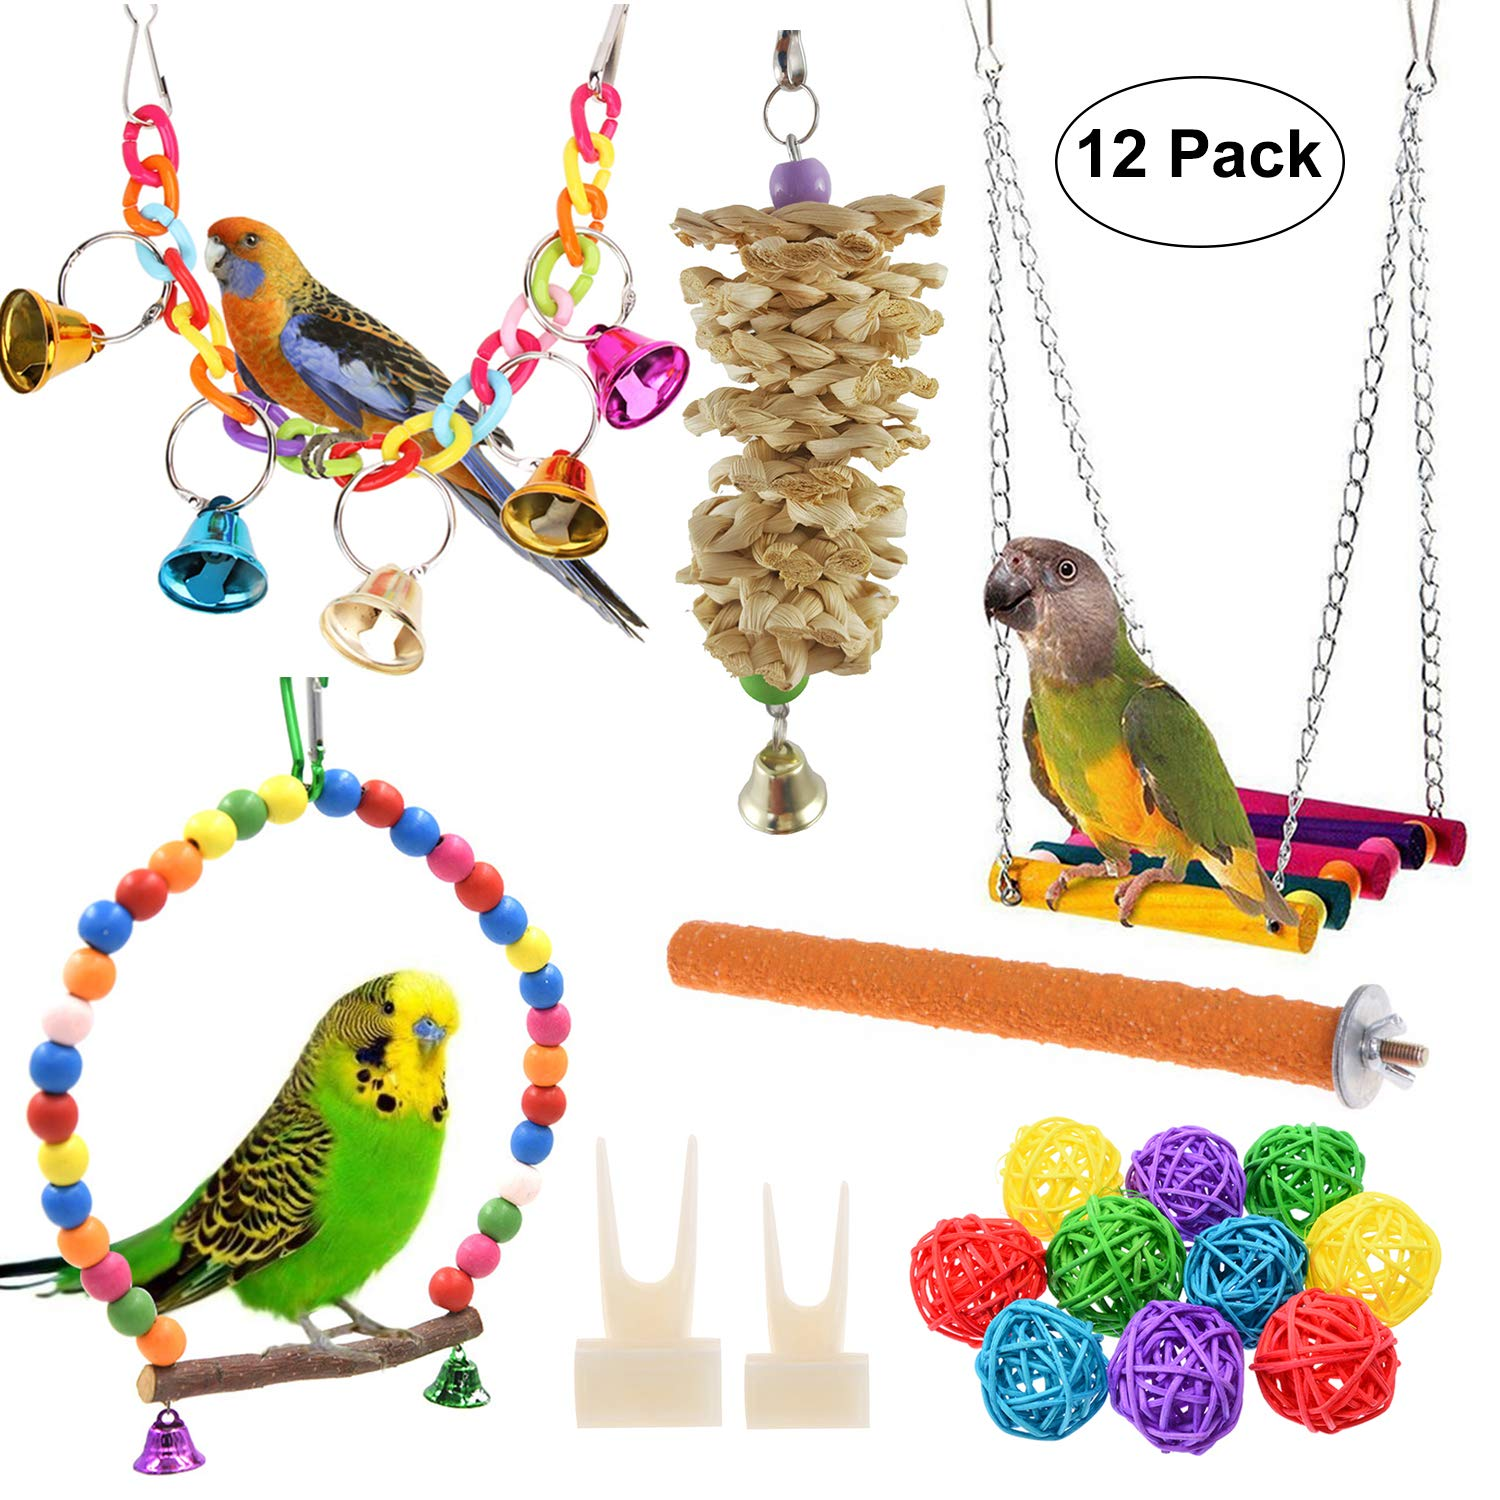 Anteer 12 Packs Bird Parrot Swing Chewing Toys – Hanging Bell Birds Cage Toys Suitable for Small Parakeets, Cockatiel…